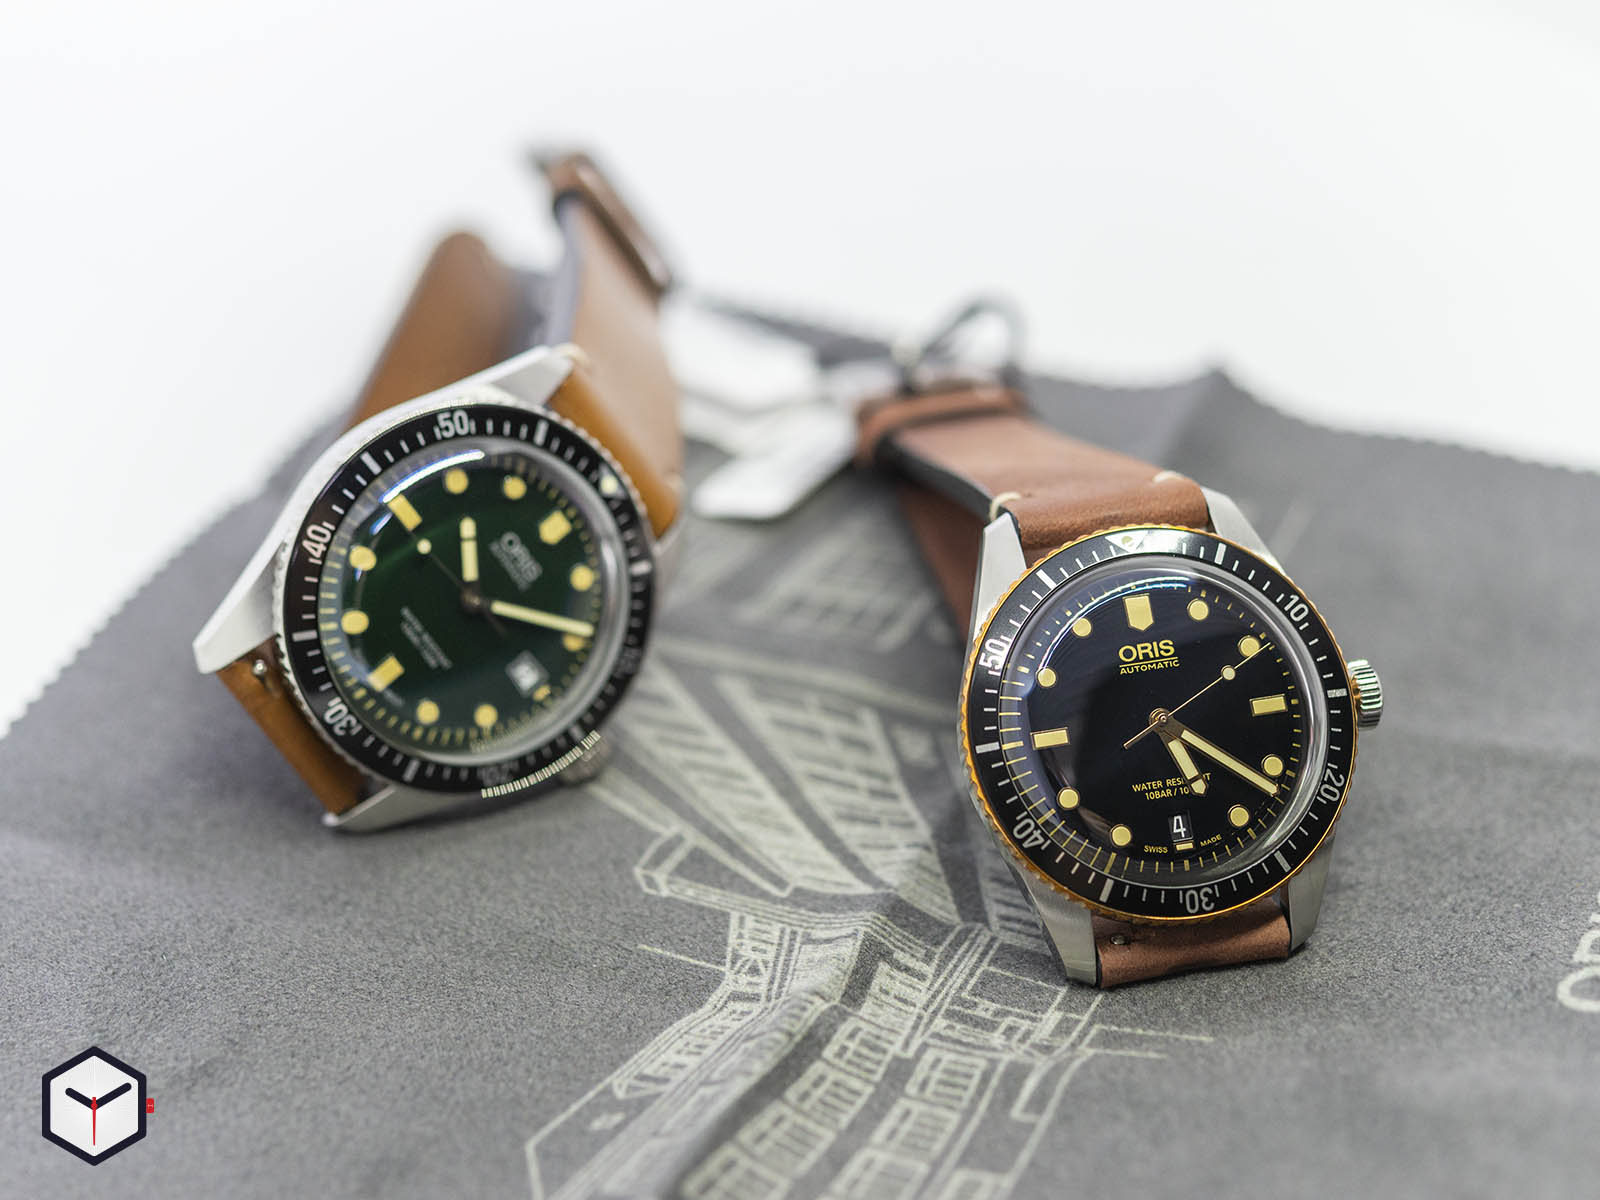 01-733-7720-4057-07-5-21-02-oris-divers-sixty-five-green-dial-8.jpg